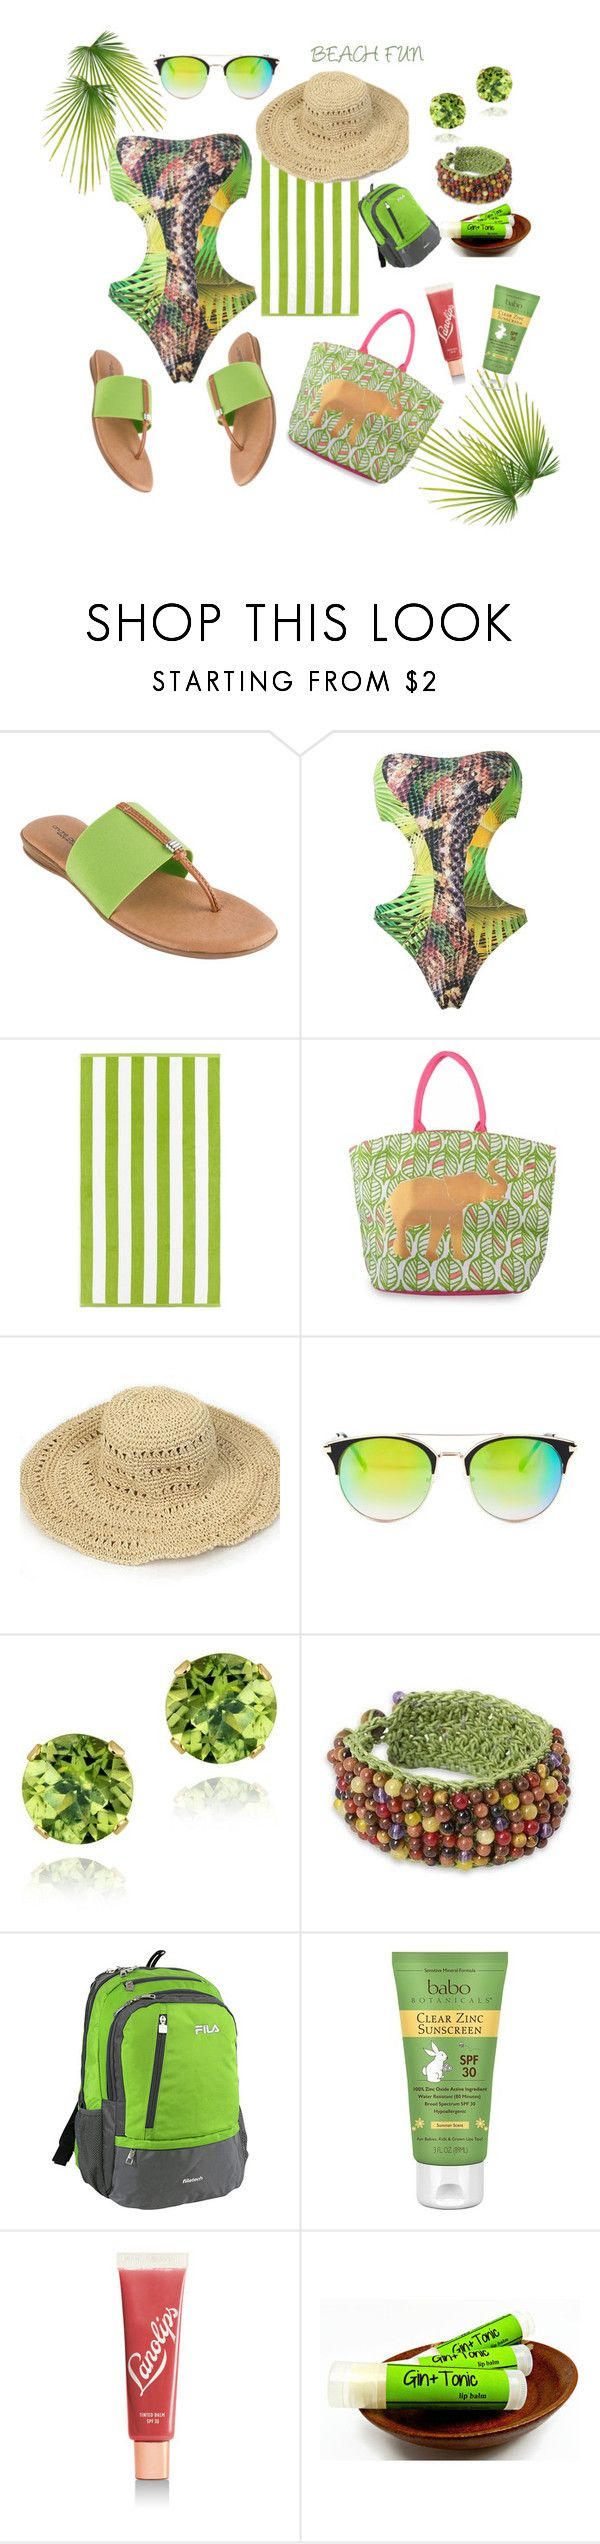 """""""Beach Fun"""" by siriusfunbysheila1954 ❤ liked on Polyvore featuring André Assous, Lygia & Nanny, Kassatex, Lucky Brand, Glitzy Rocks, NOVICA, Fila, Babo Botanicals and Lano"""